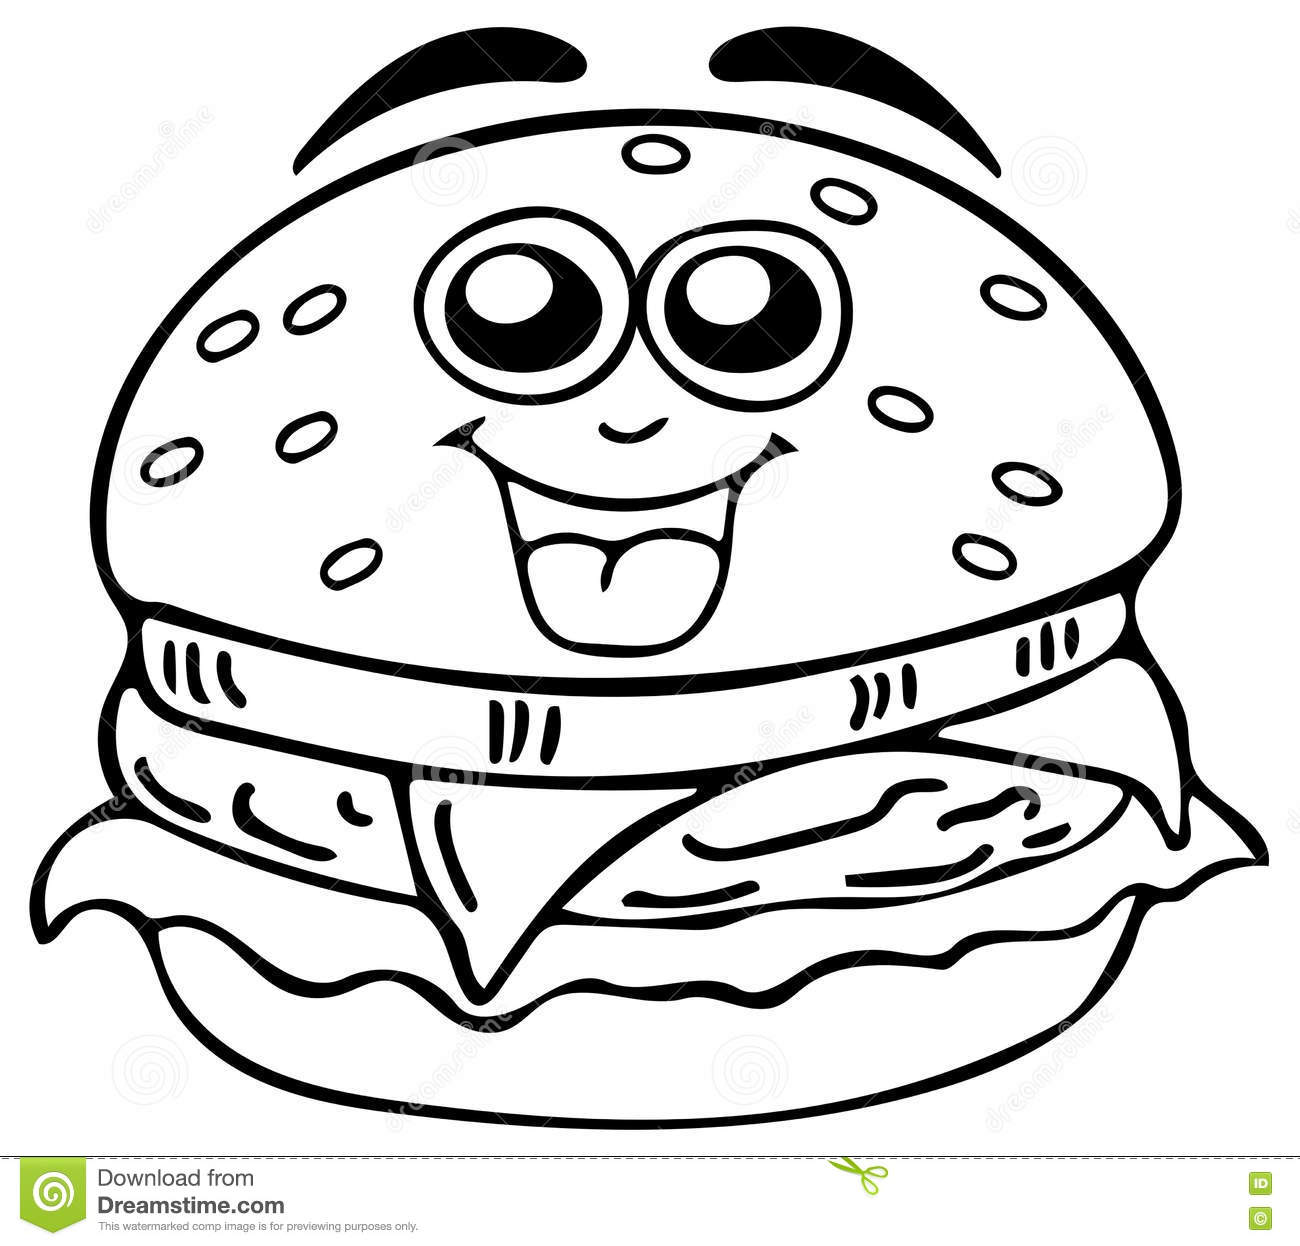 Cheeseburger Coloring Pages Sketch Coloring Page Cheeseburger Coloring Page